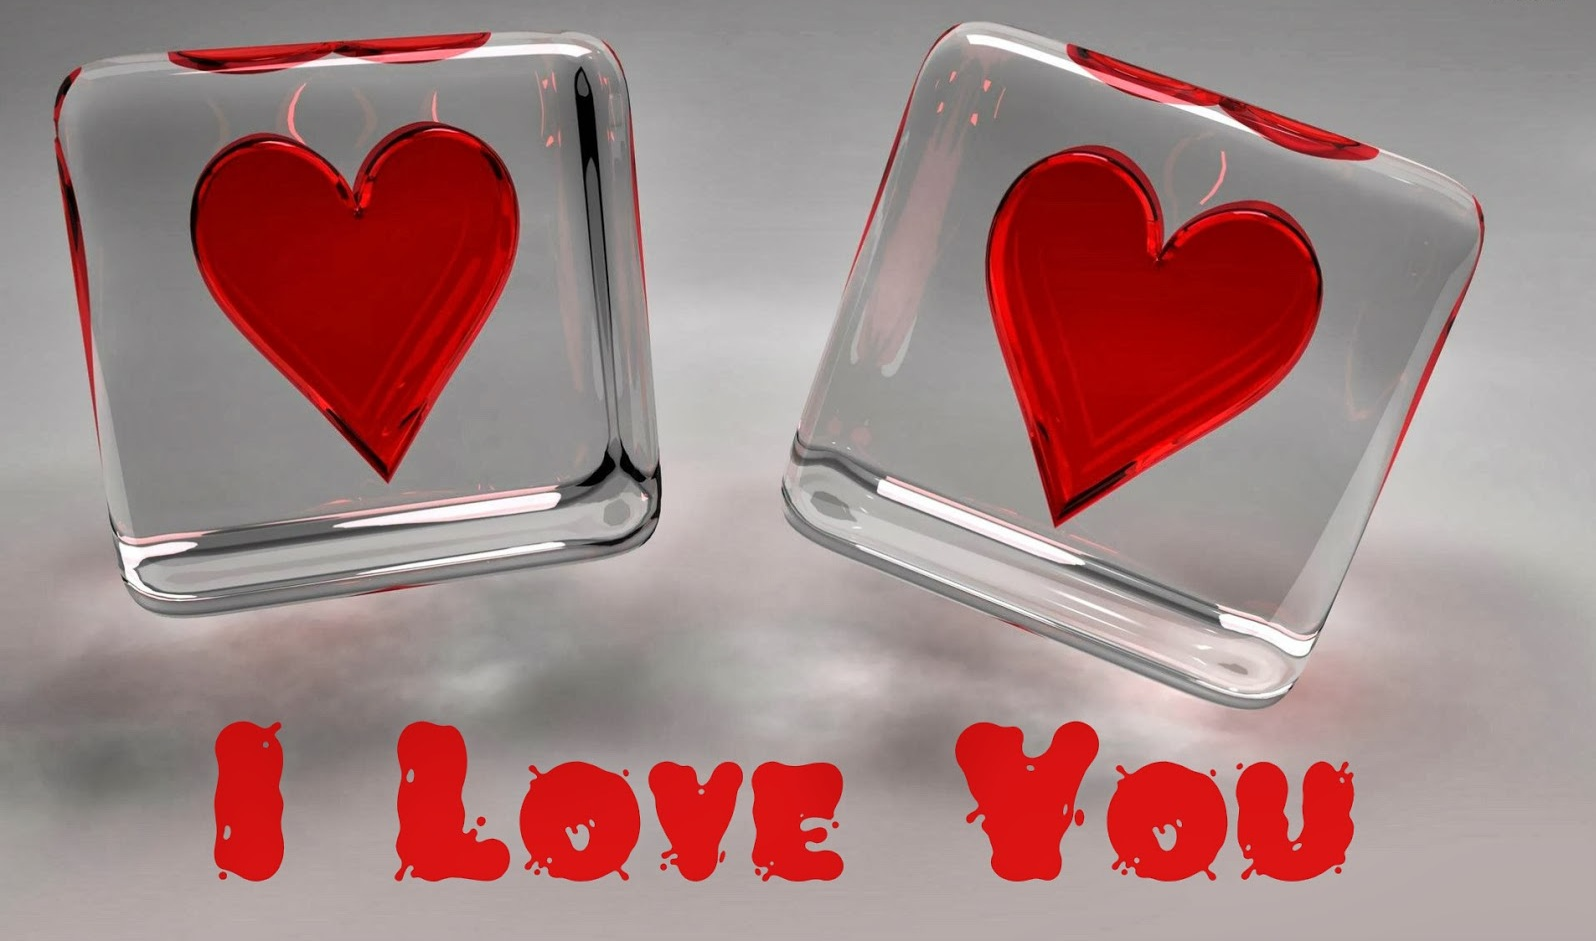 Wallpaper Hd 3d I Love You : I Love You Wallpapers, Pictures, Images